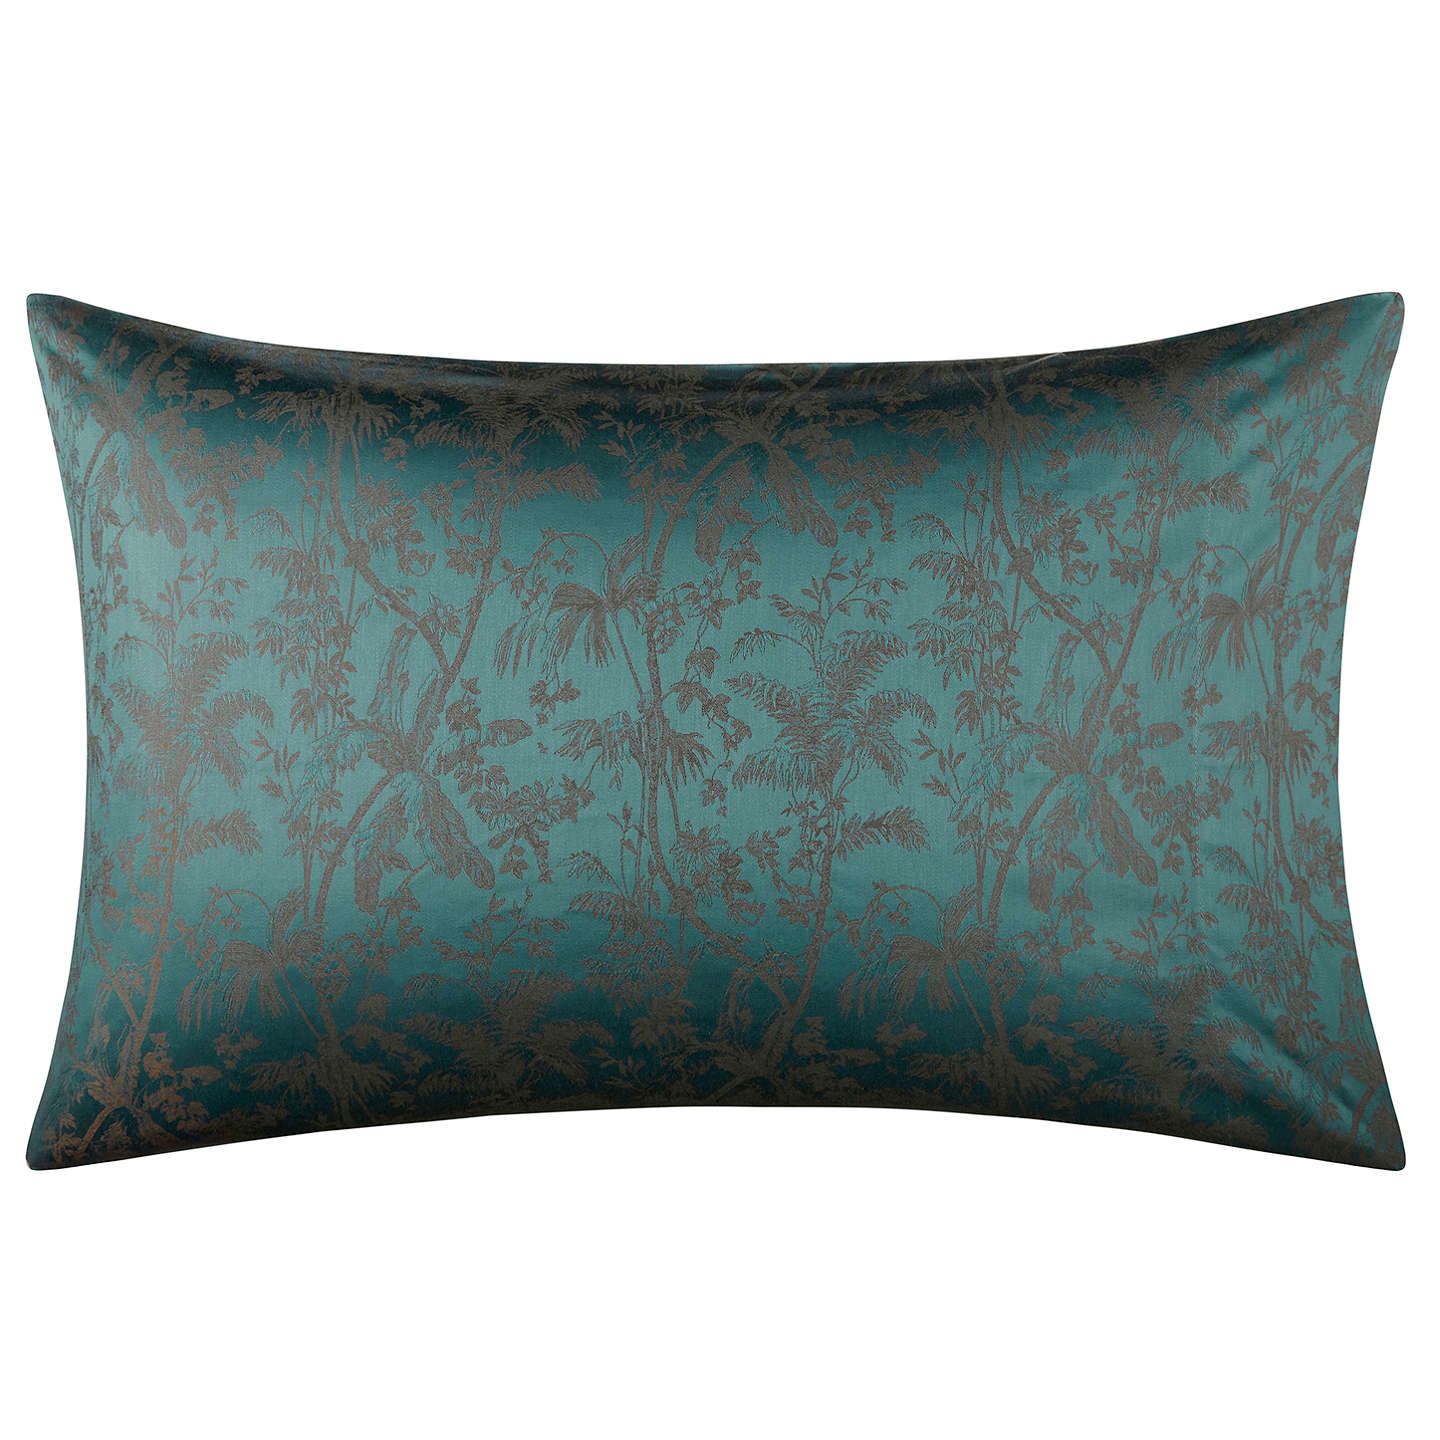 BuyJohn Lewis Hotel Chinoiserie Cotton Duvet Cover, Single, Green Online at johnlewis.com